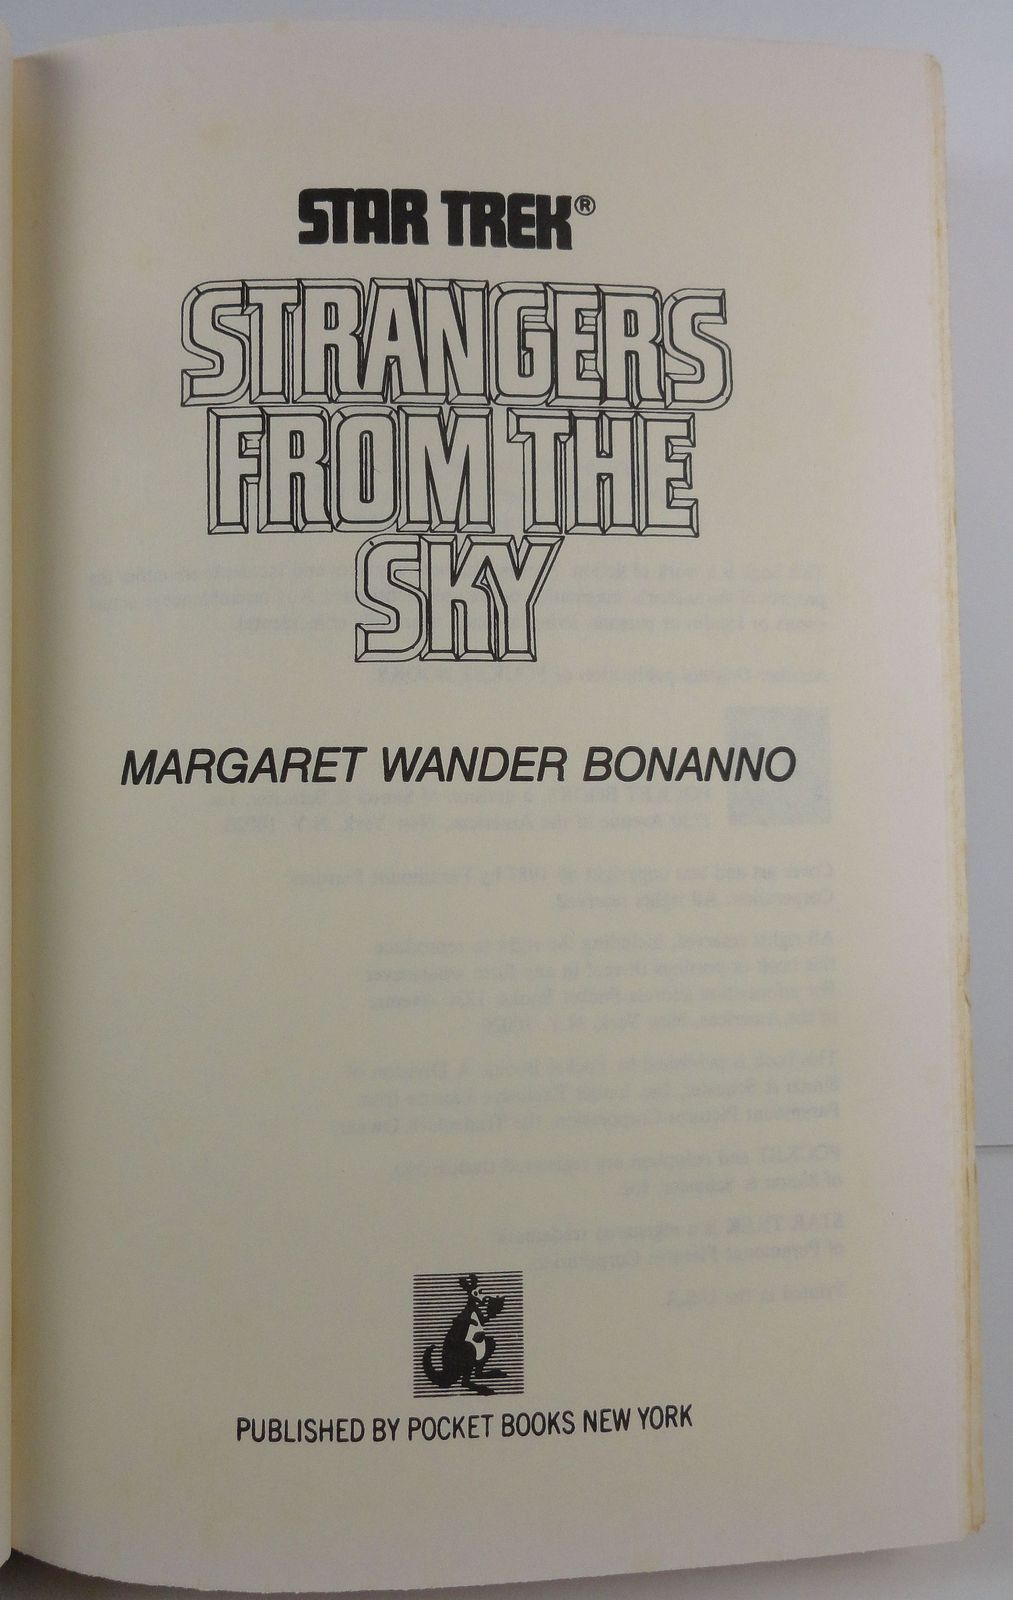 Star Trek Strangers From the Sky by Margaret Wander Bonanno